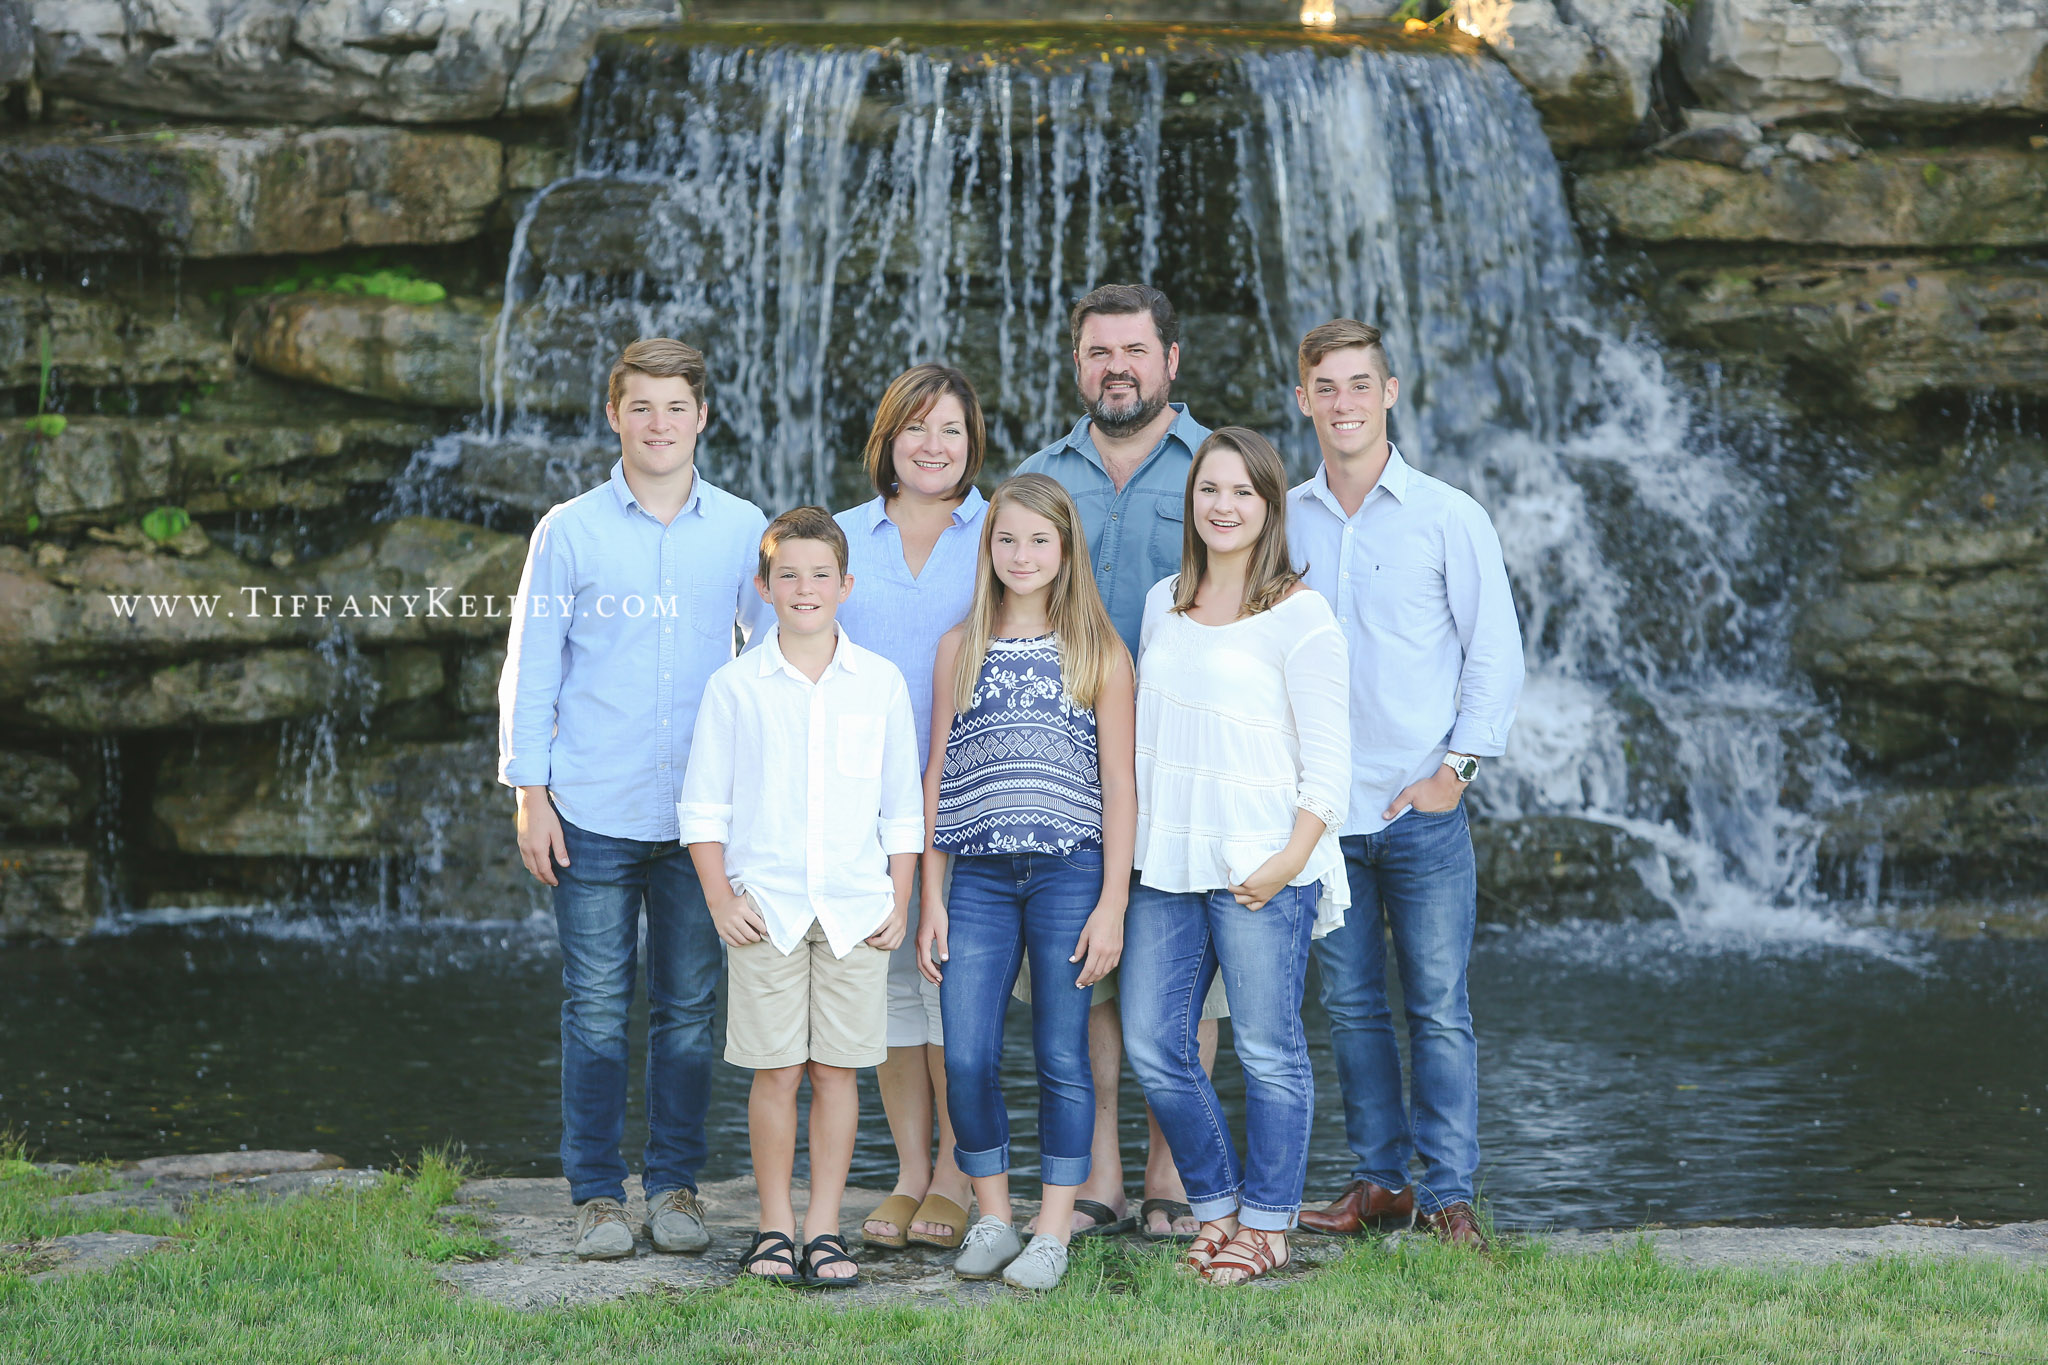 branson-missouri-family-portrait-photographer-tiffany-kelley-photography-10